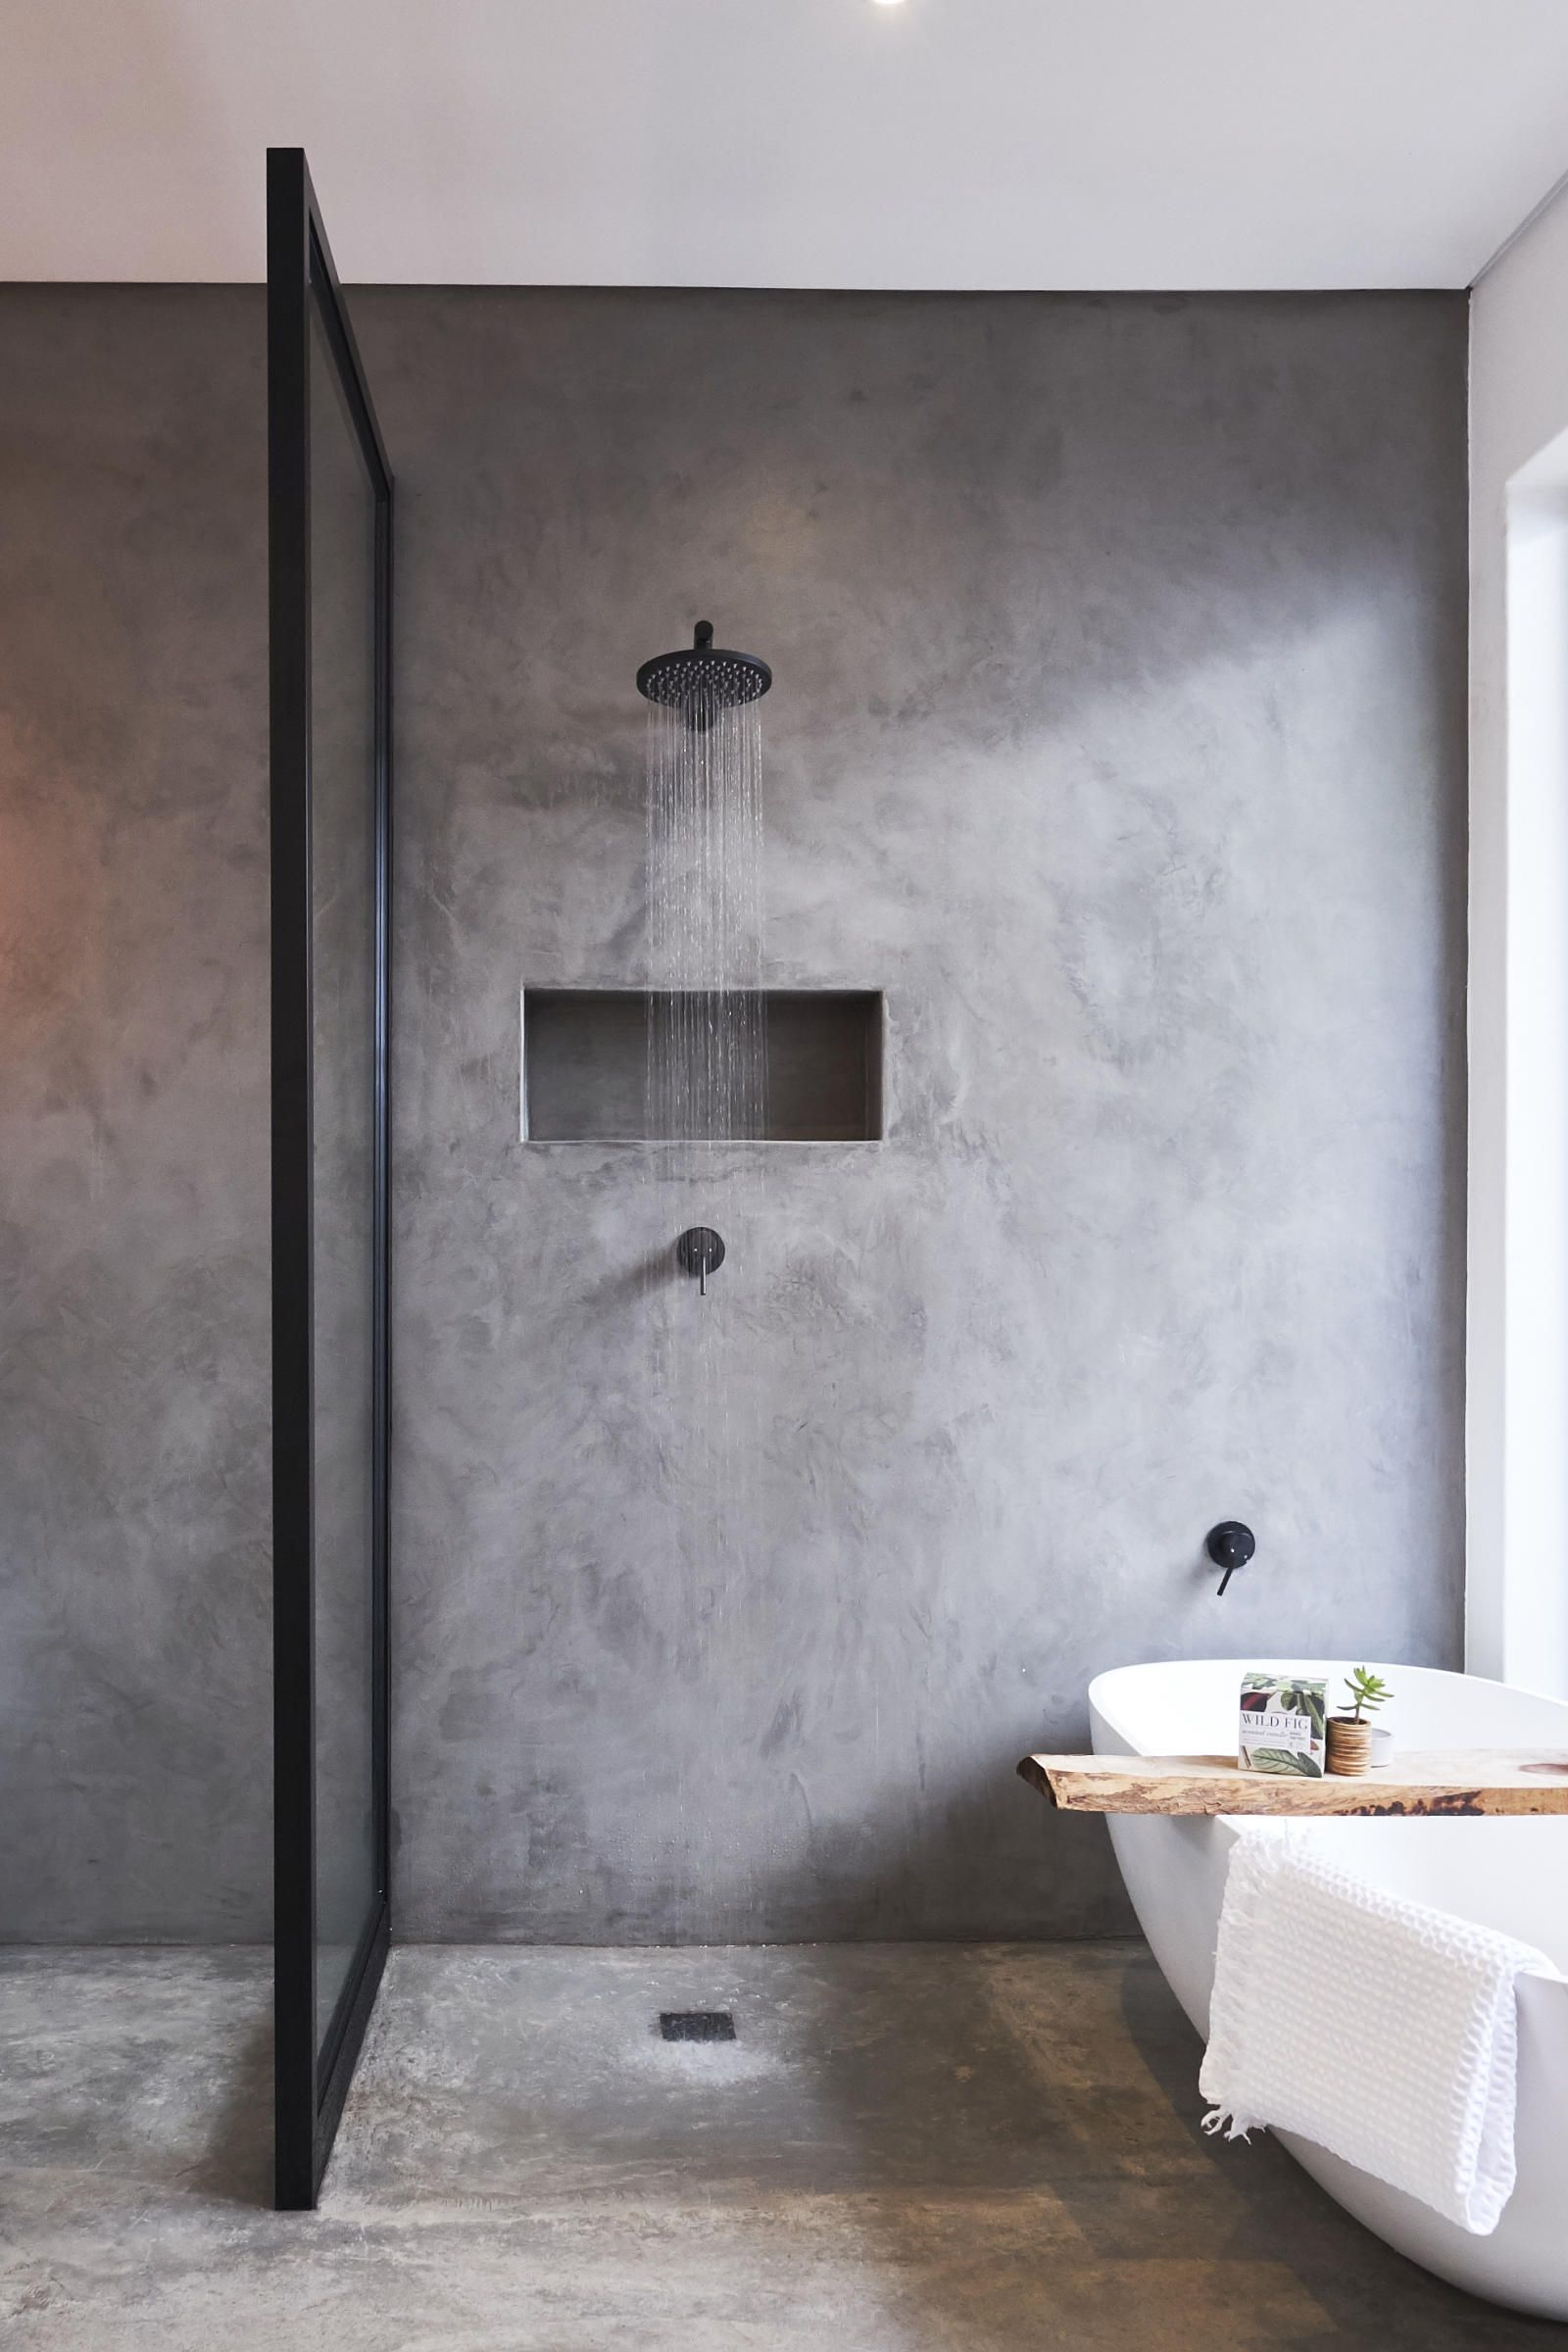 Meir Black Wall Mounted Shower Wall Mixers Shower Grate Cemcote Dark Grey Normal Screed Floors Sealed With Cem Bagno Nero Arredamento Bagno Bagno Di Casa